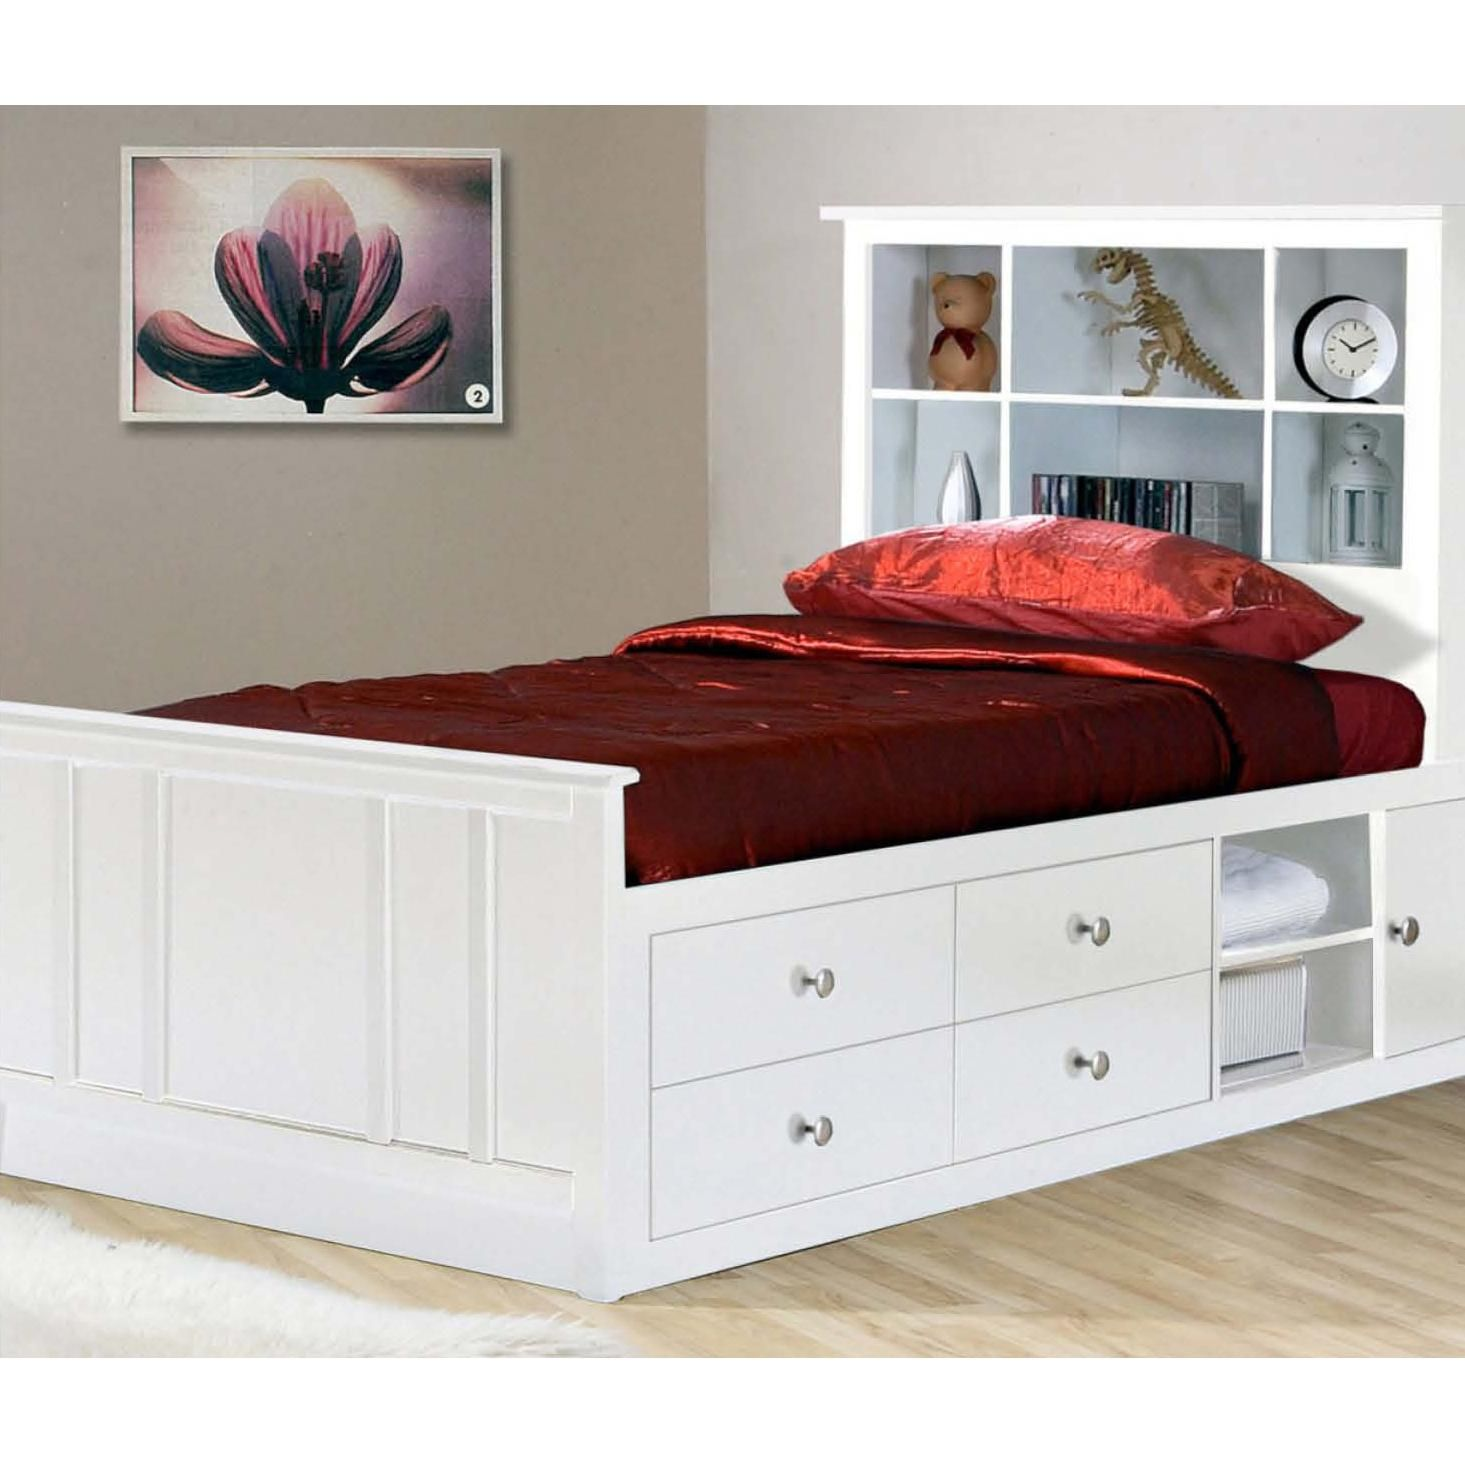 White twin bed with drawers - Millie White Millie White Twin Captain S Bed By Private Reserve